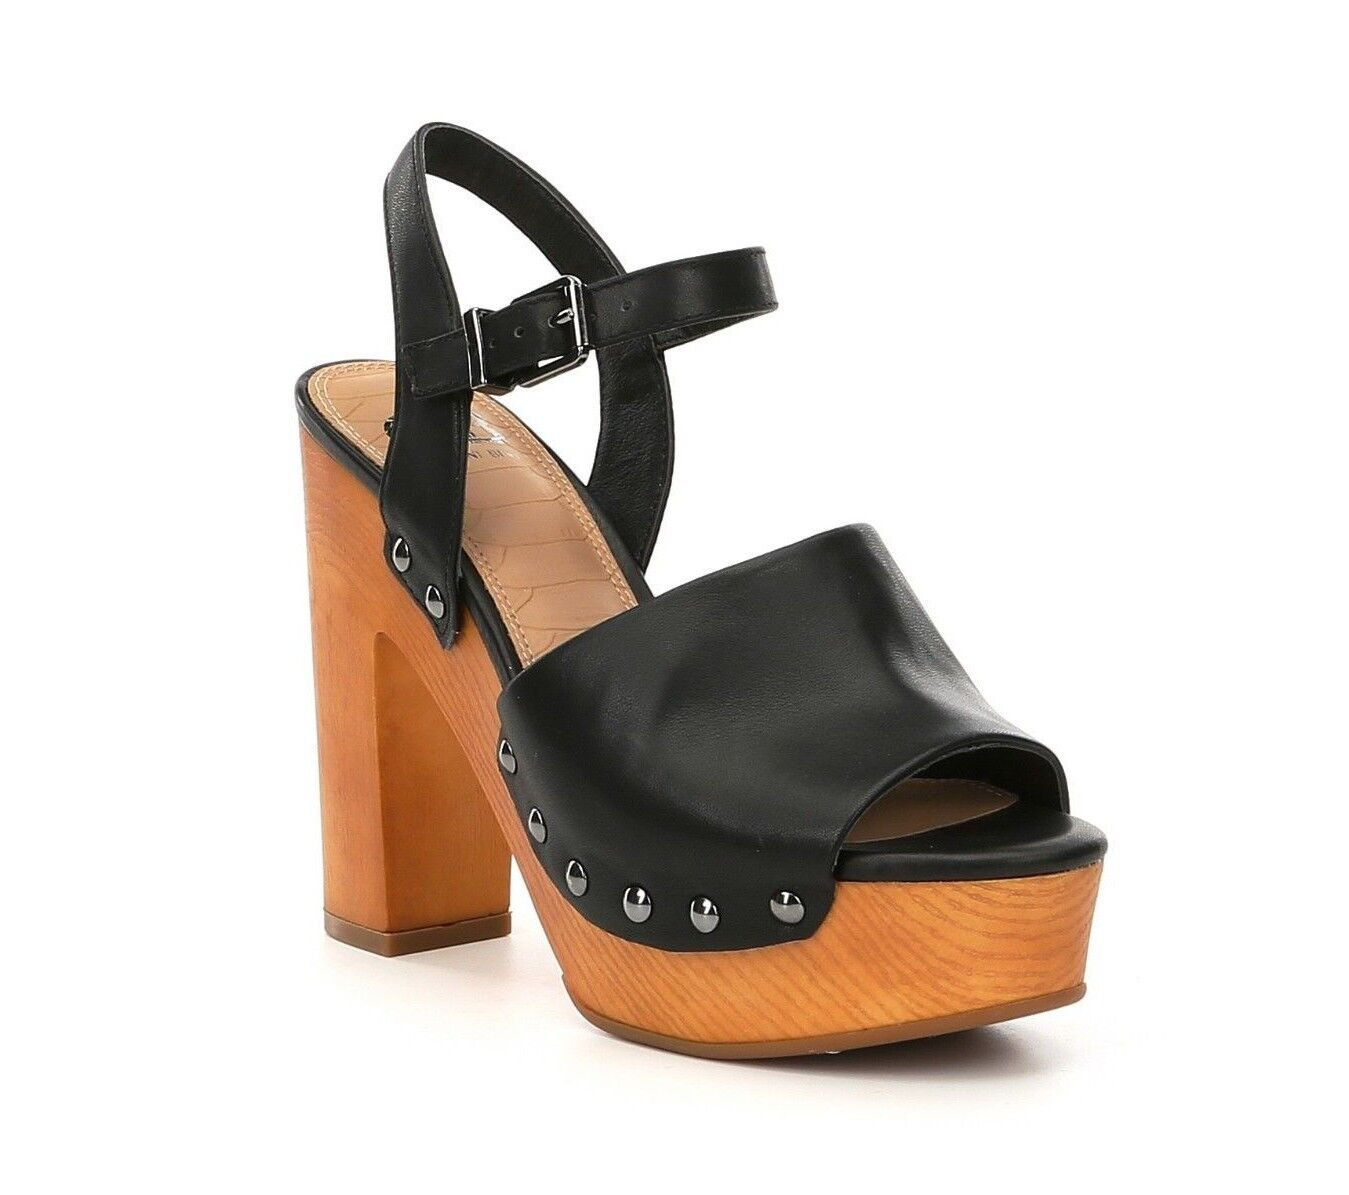 GB Gianni Bini Meri-Cana Womens Size 8M Black Leather Nail Stud Platform Sandals